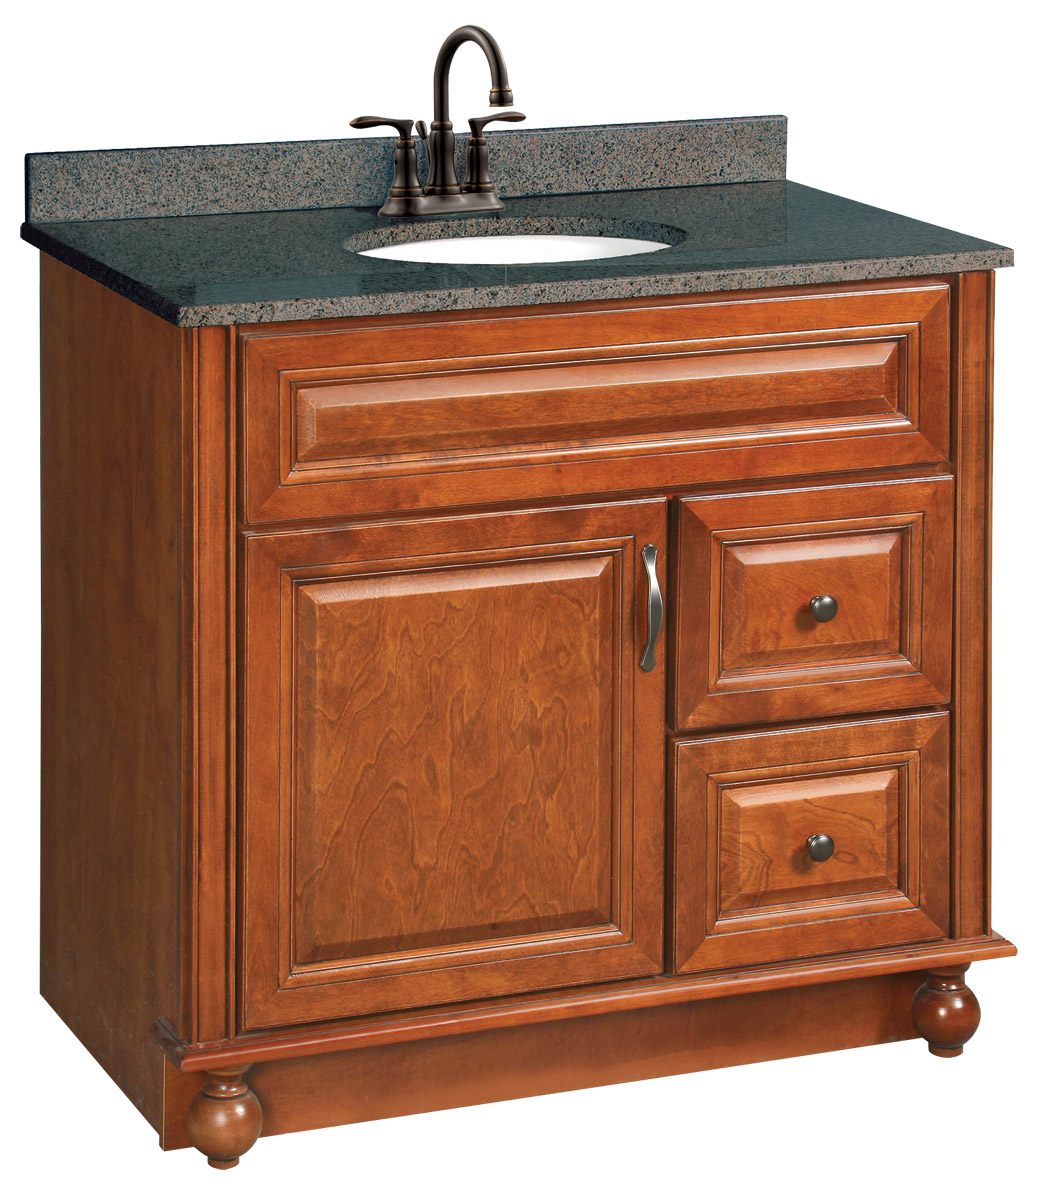 Design House 538553 Montclair Chestnut Glaze Vanity Cabinet with 1-Door and 2-Drawers 36-Inches by 33.5-Inches